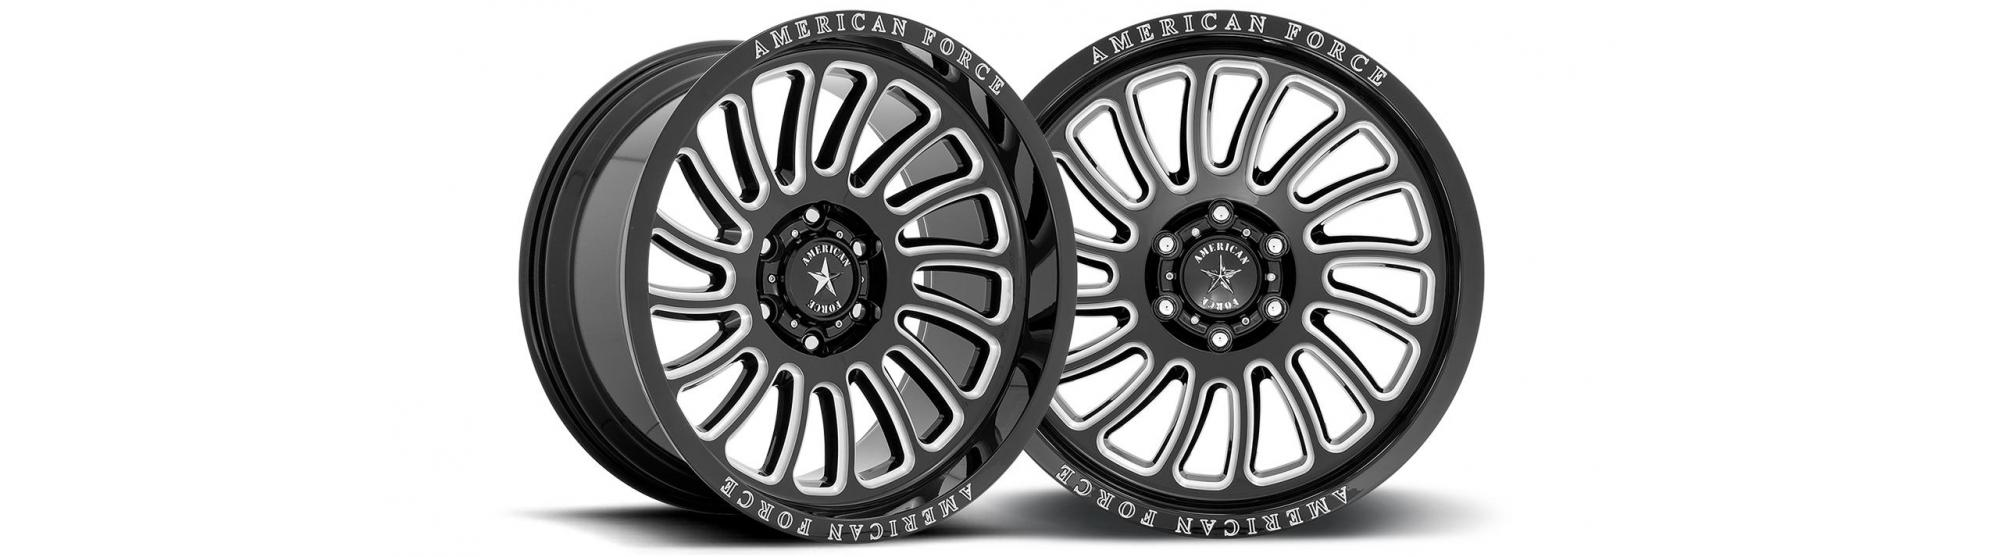 The New Force Form AC004 Vulcan from American Force Wheels